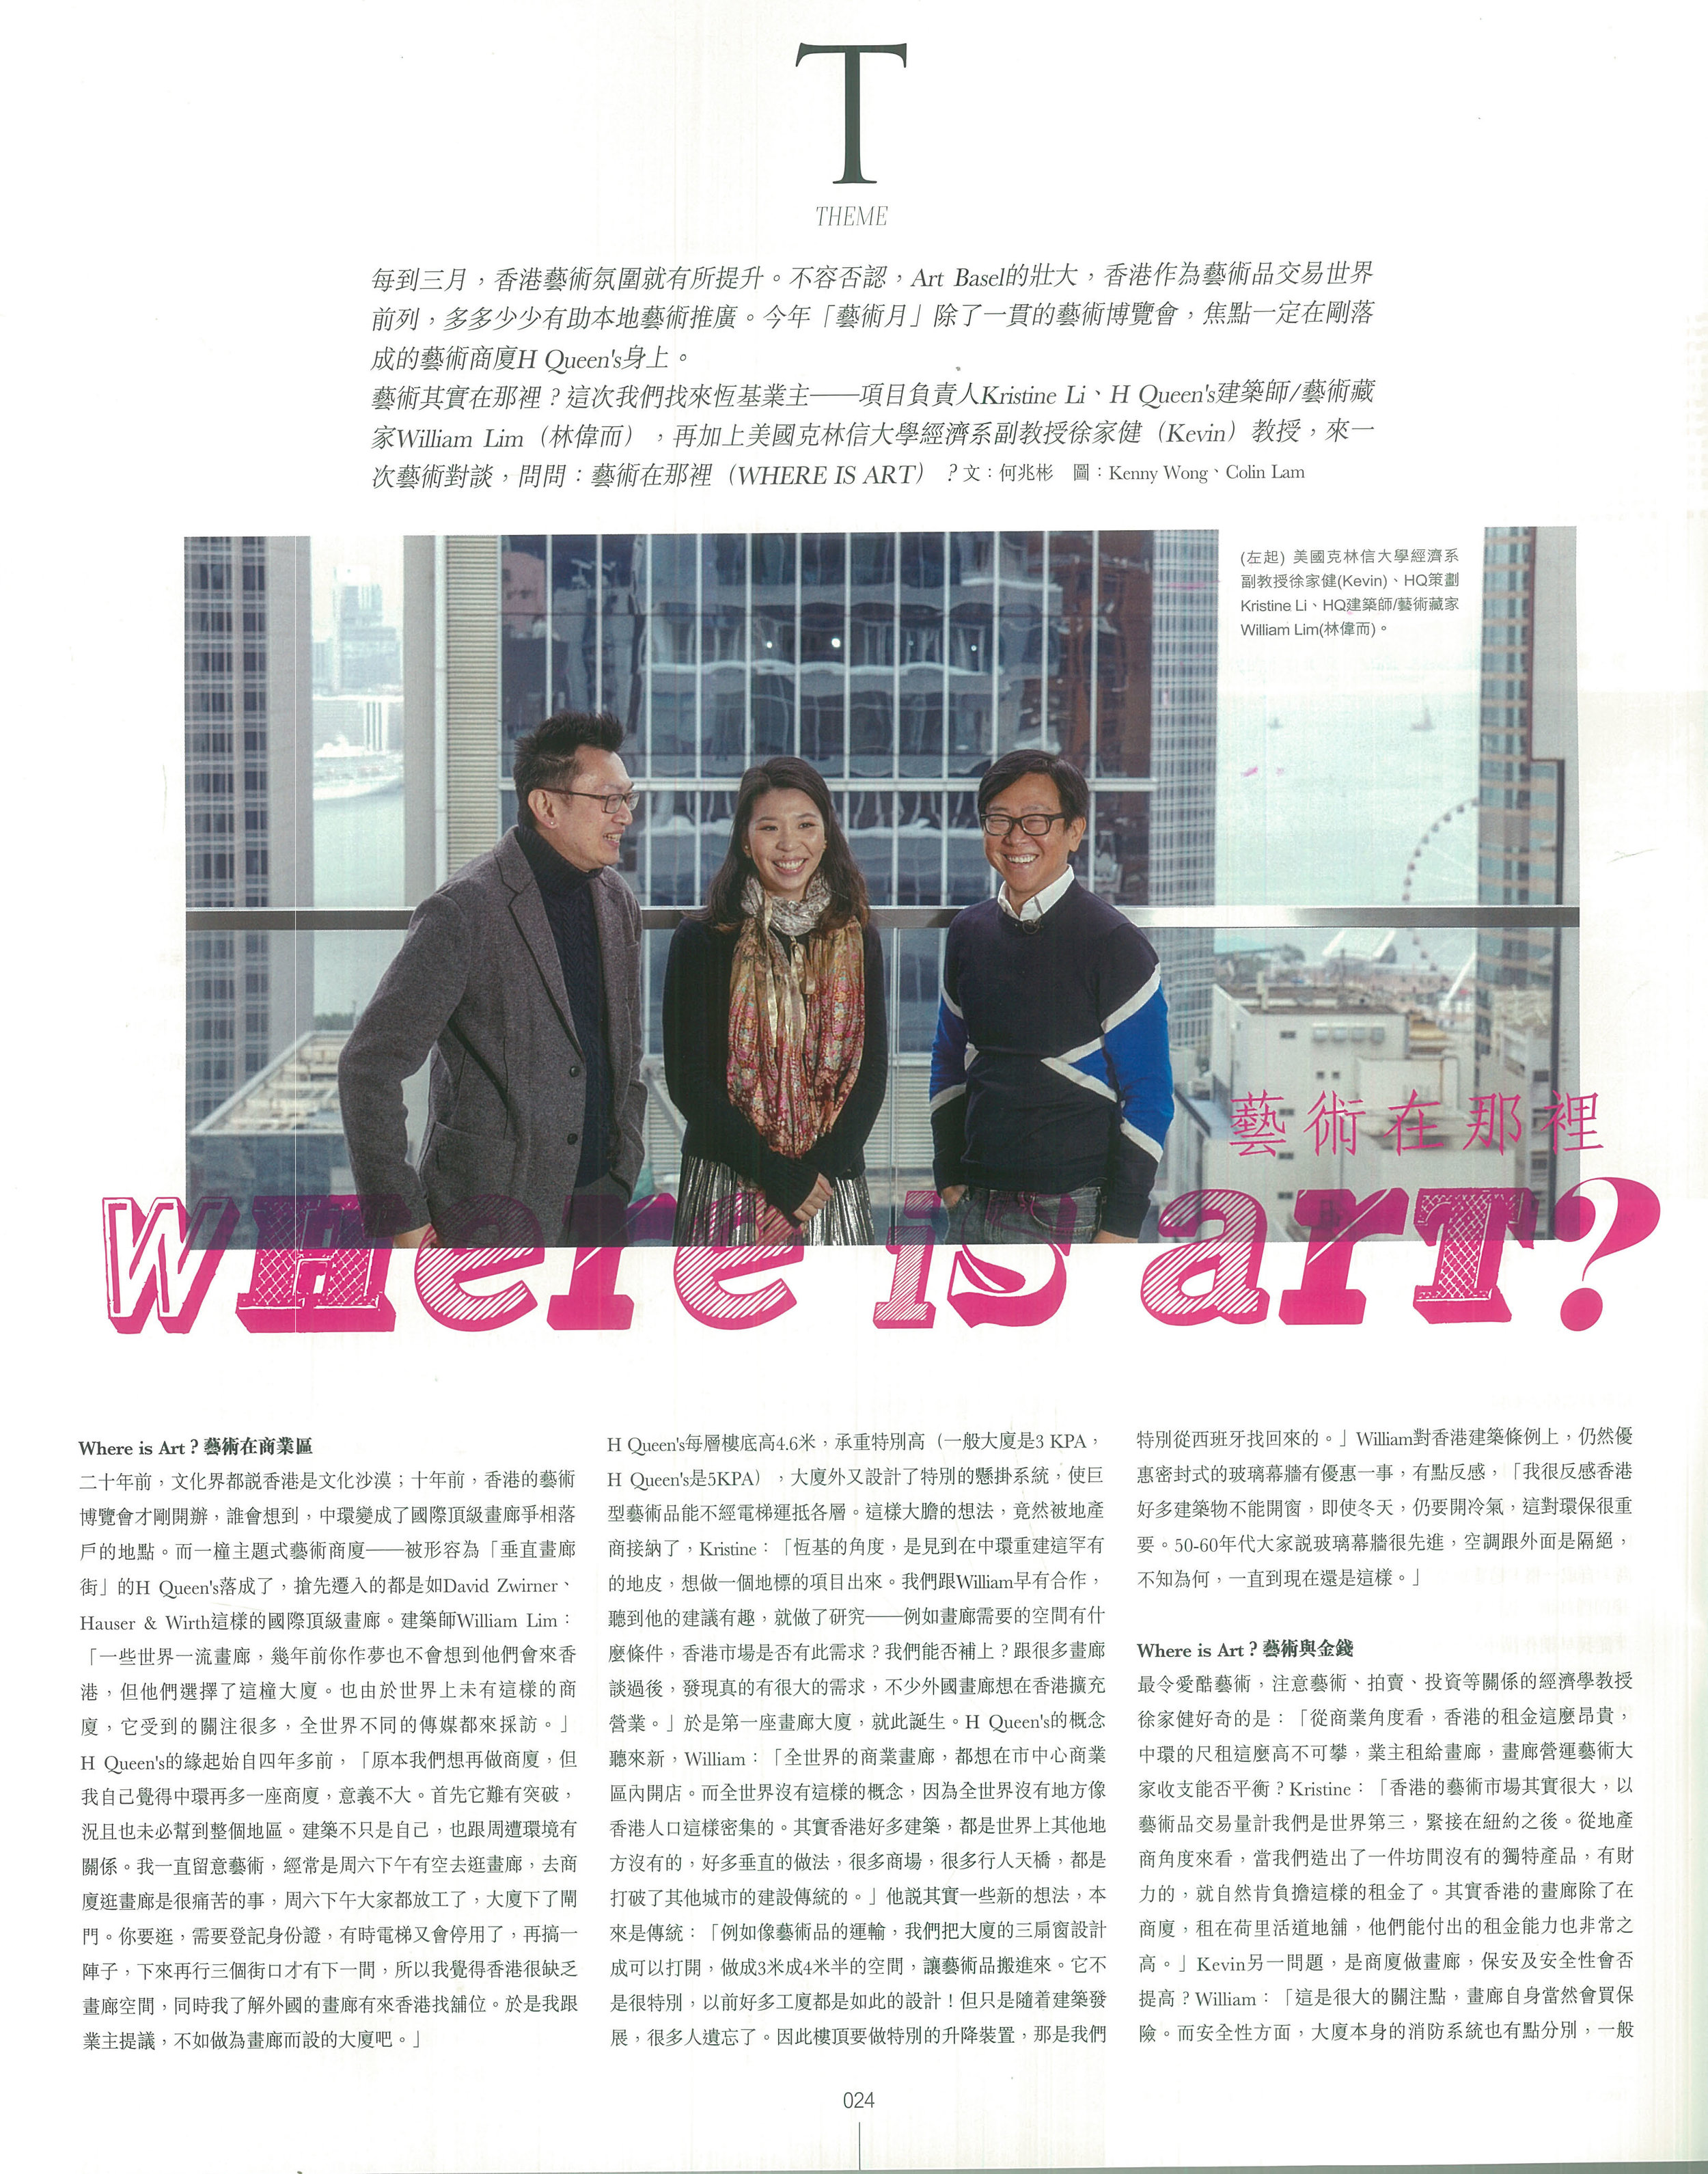 180309 Life Style Journey_Issue 214_9-3-2018_Page_24.jpg